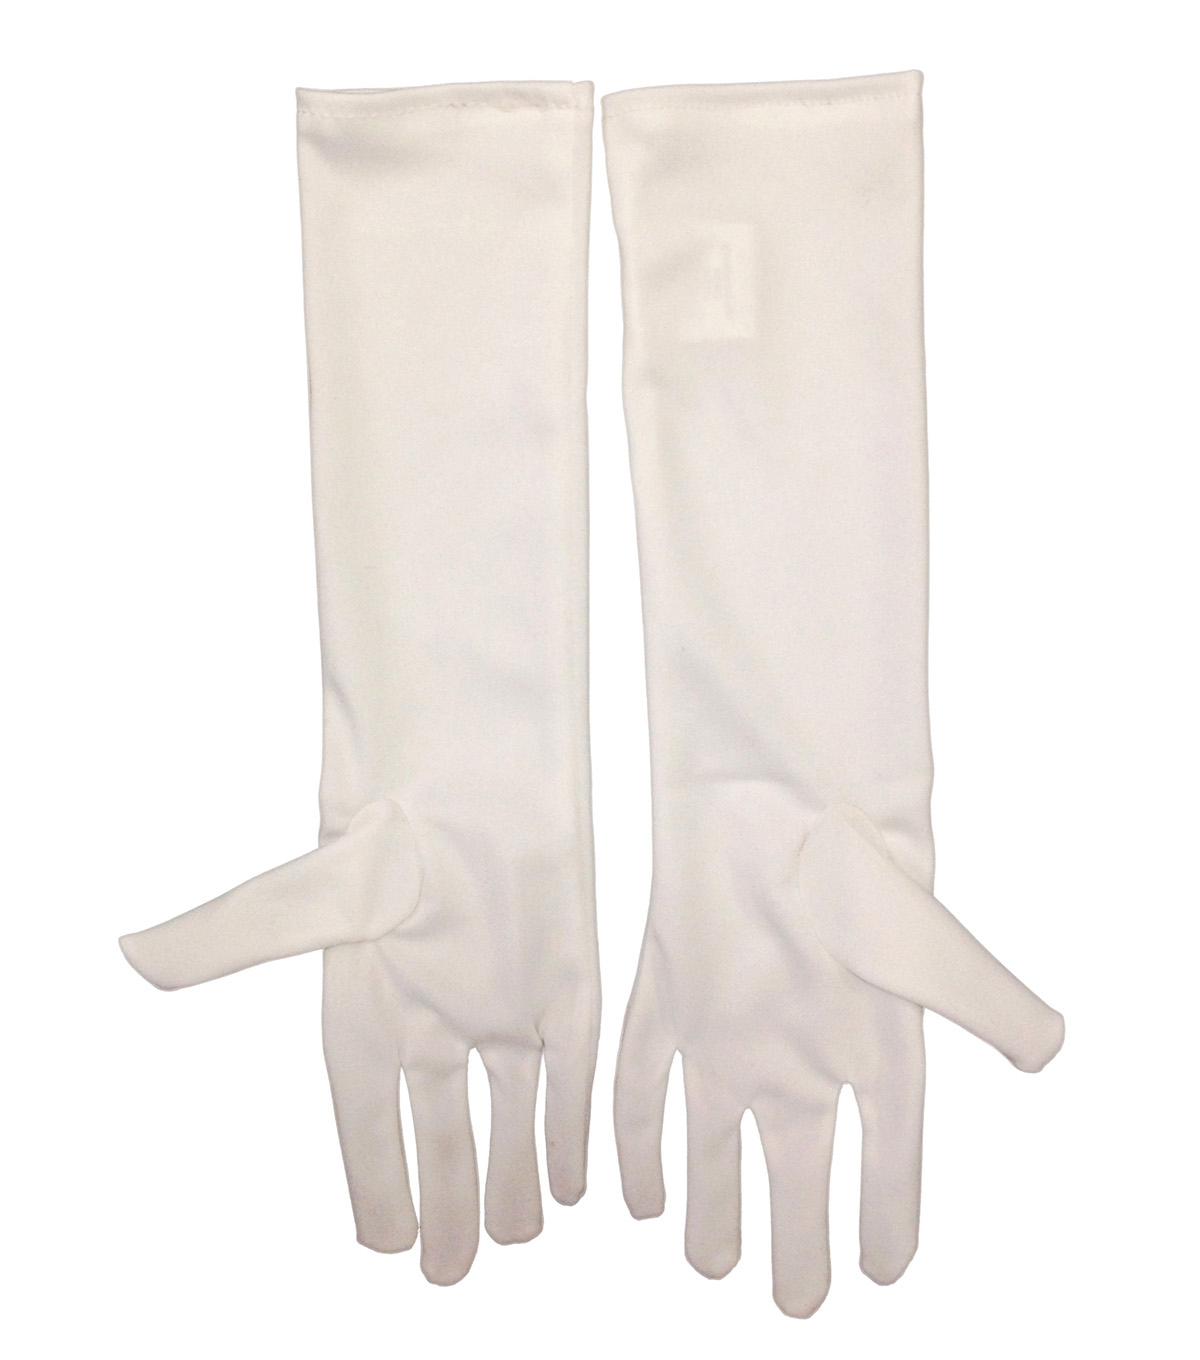 Maker's Halloween Long Children's Gloves-White